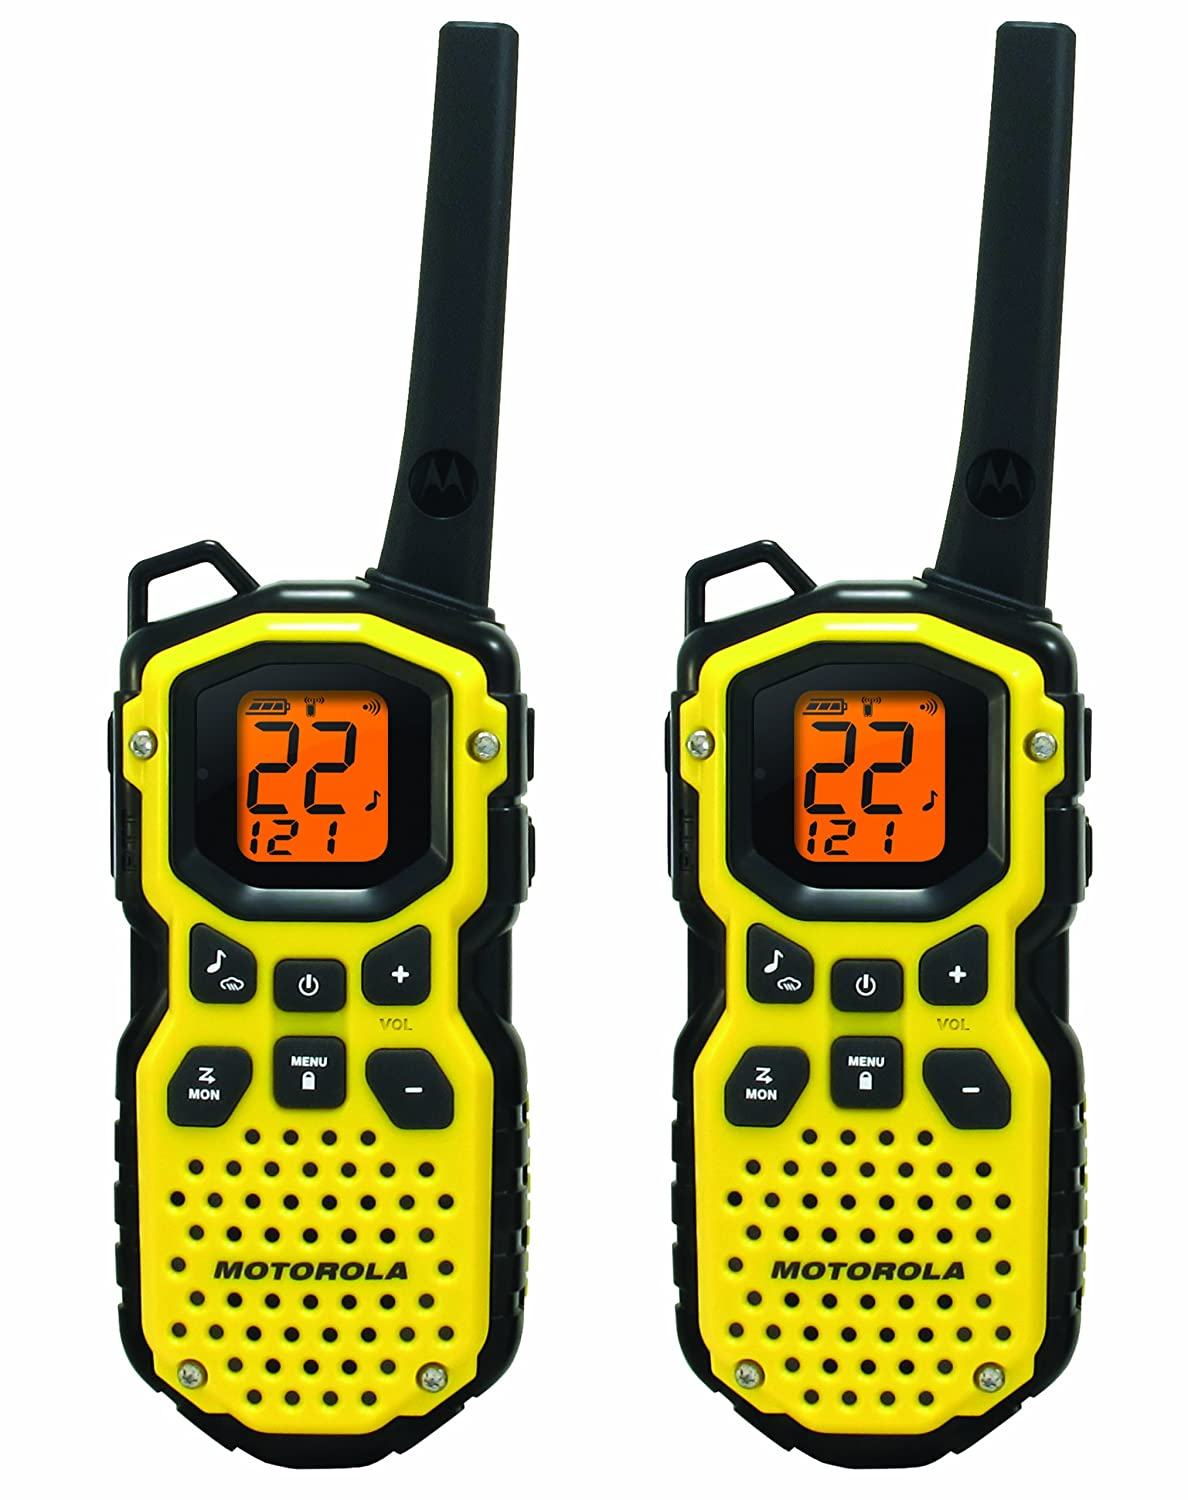 Best Waterproof Walkie Talkies - Motorola MS355R FRS Waterproof Two-Way